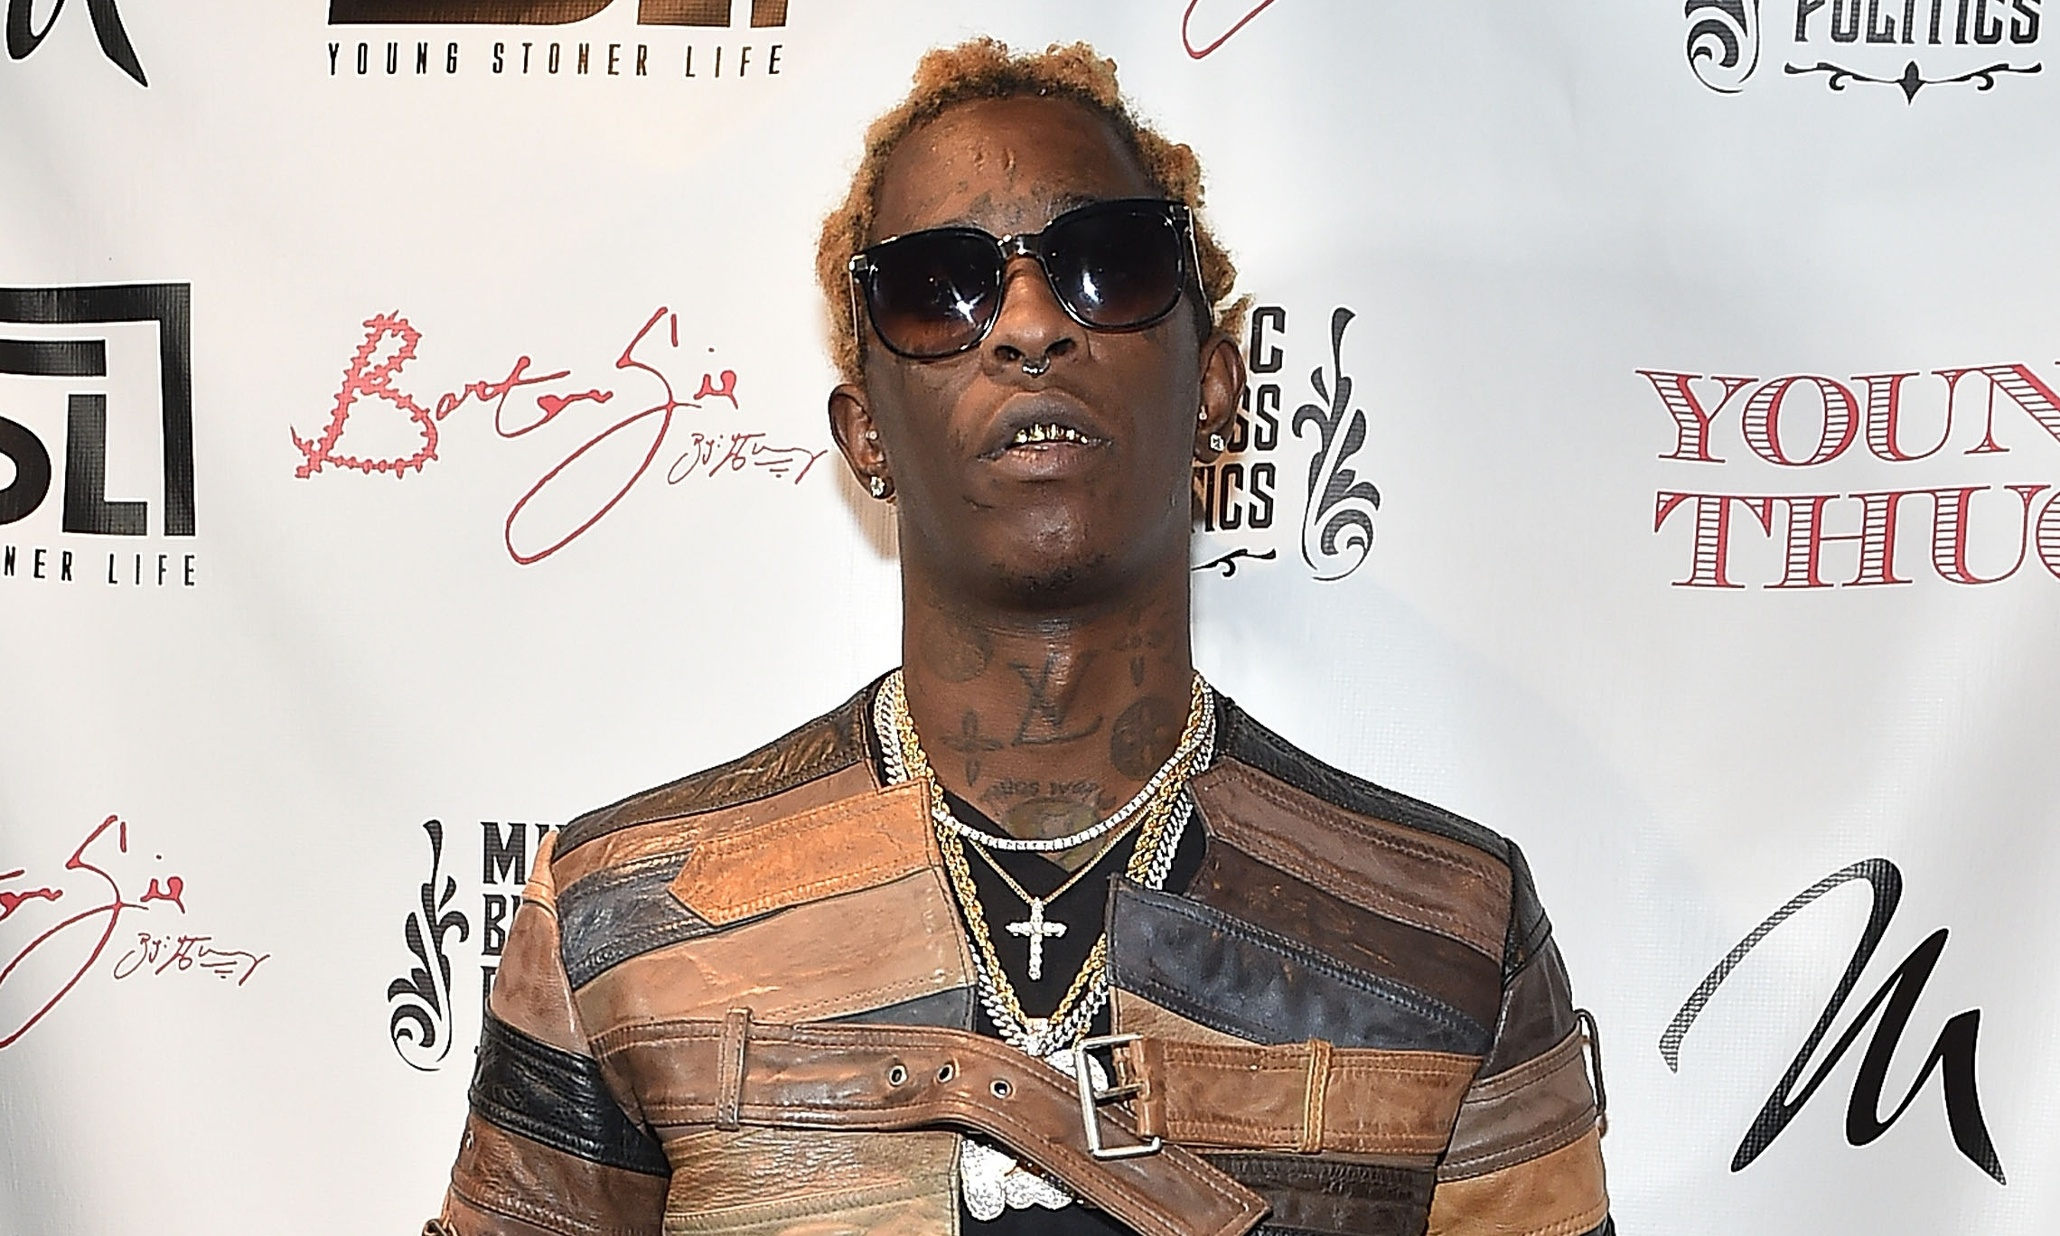 ATLANTA, GA - APRIL 17: Rapper Young Thug attend Young Thug Private Listening Party at Tease on April 17, 2015 in Atlanta, Georgia. (Photo by Paras Griffin/Getty Images)